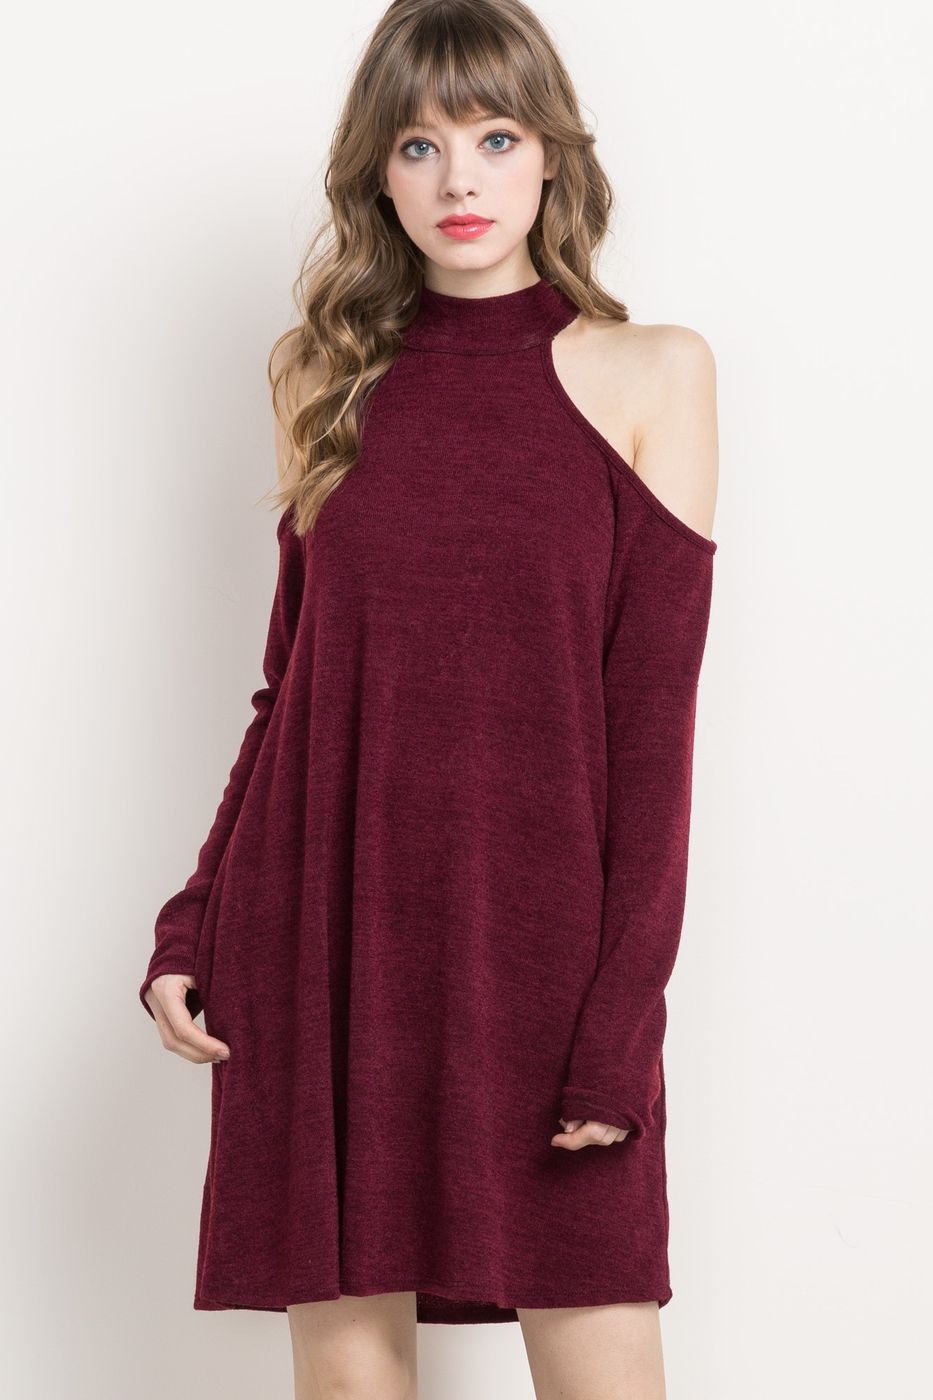 OPEN-SHOULDER HALTER SWEATER DRESS - orangeshine.com